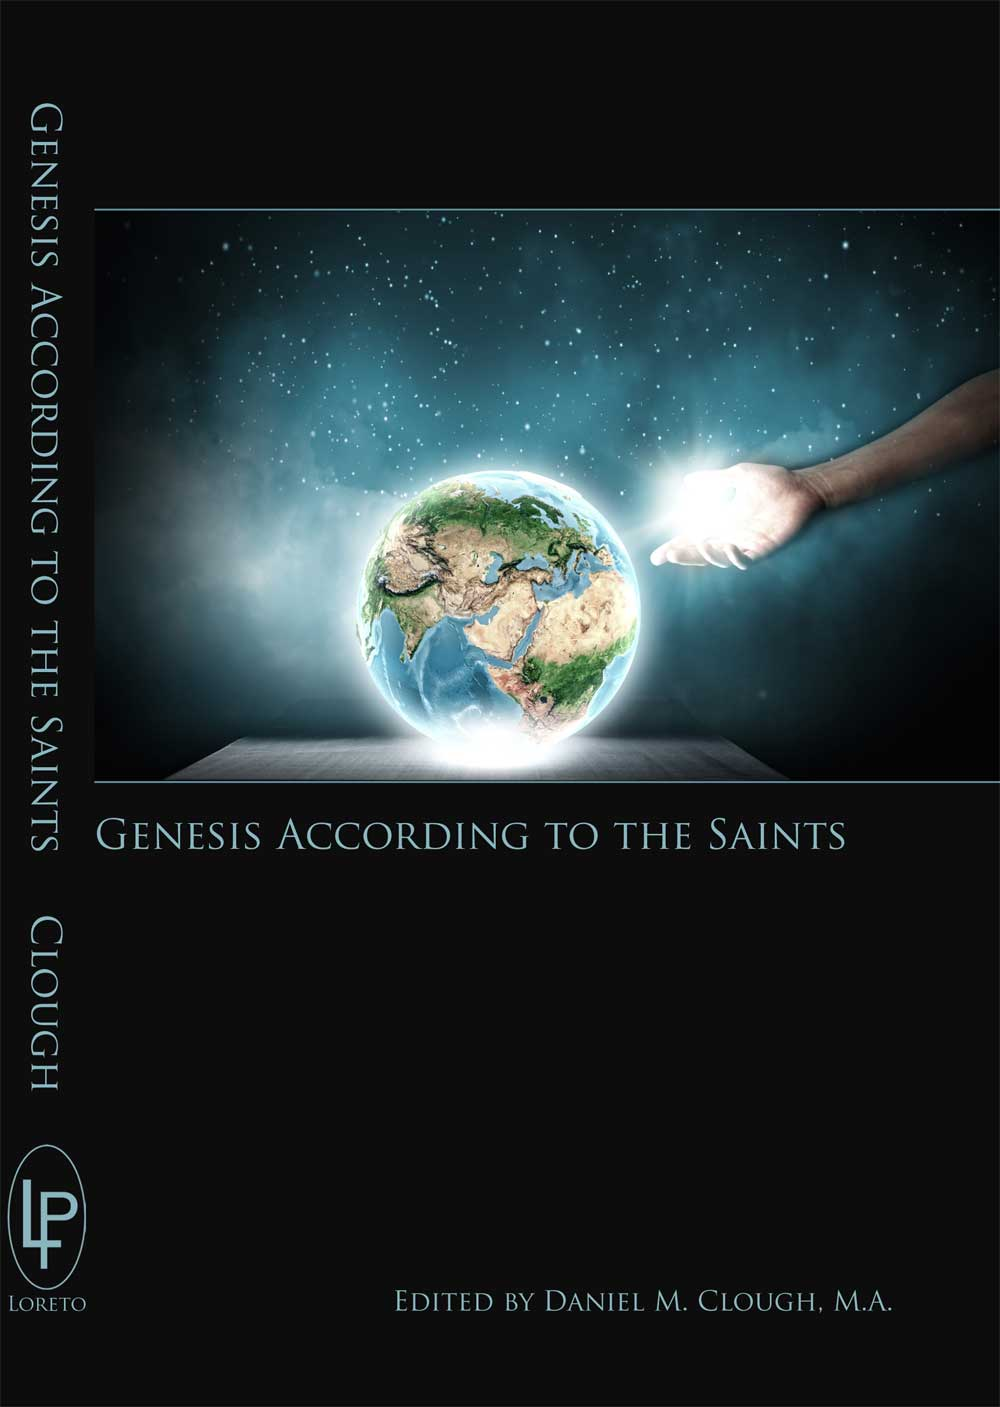 Reconquest Episode 204: Genesis According to the Saints. Guest: Daniel Clough